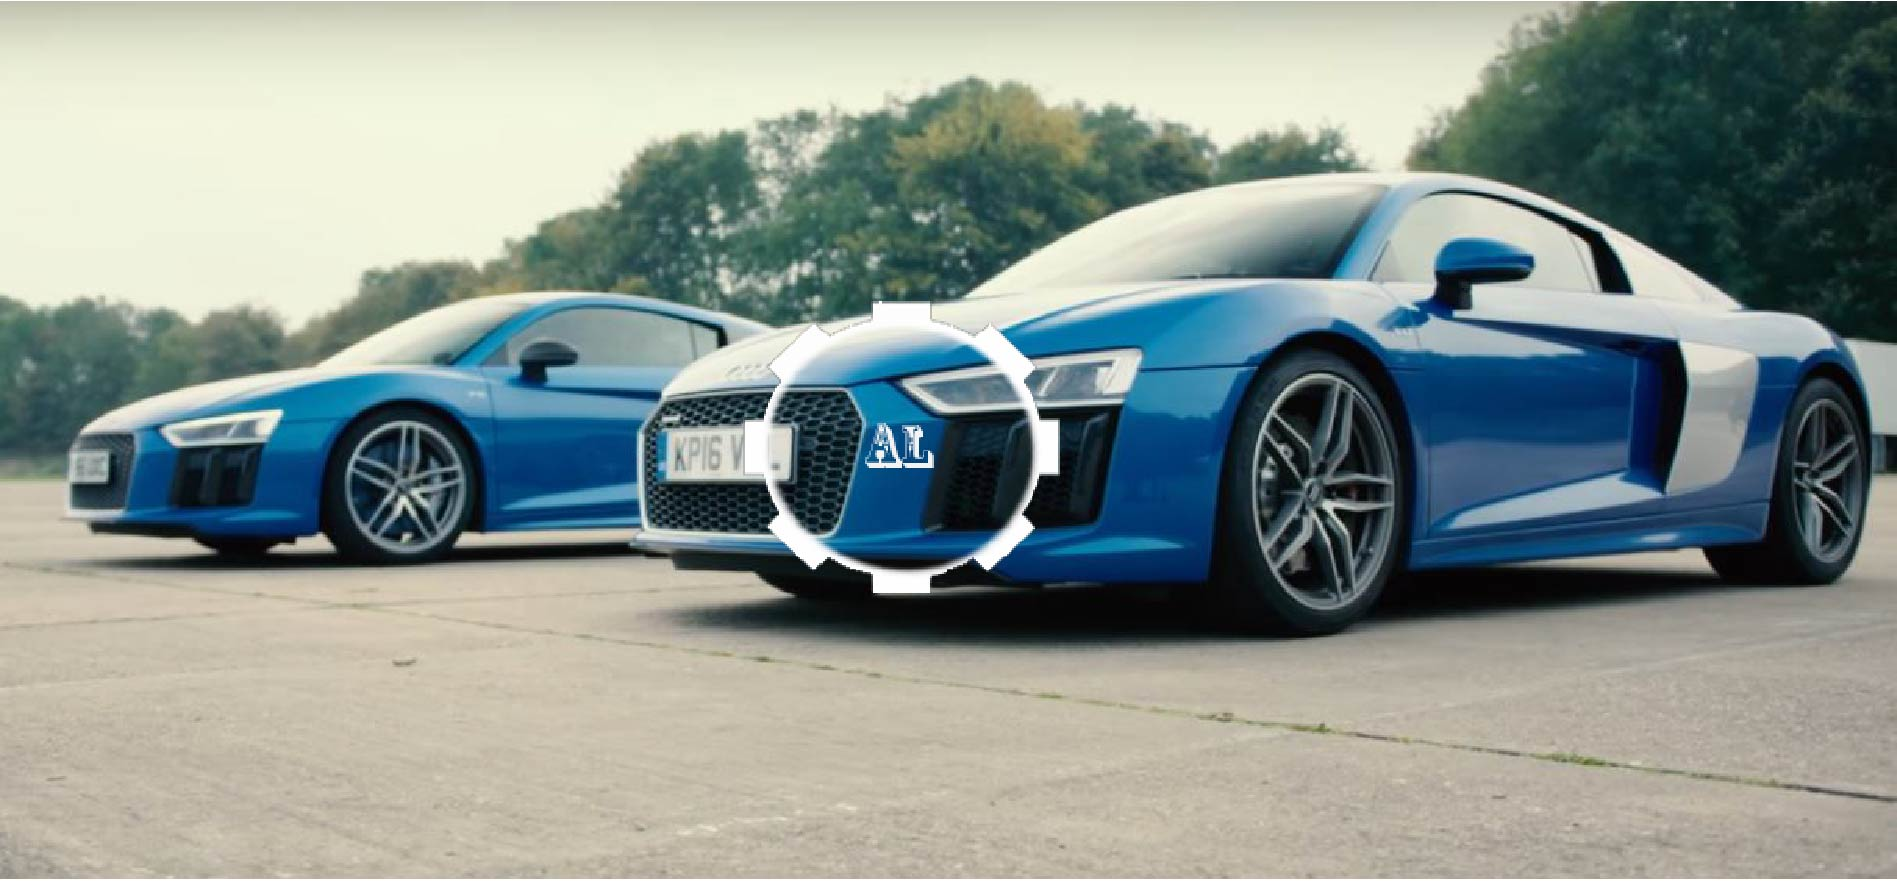 audi r8 v10 vs v10 plus drag race how much difference does 69bhp make audi lovers. Black Bedroom Furniture Sets. Home Design Ideas